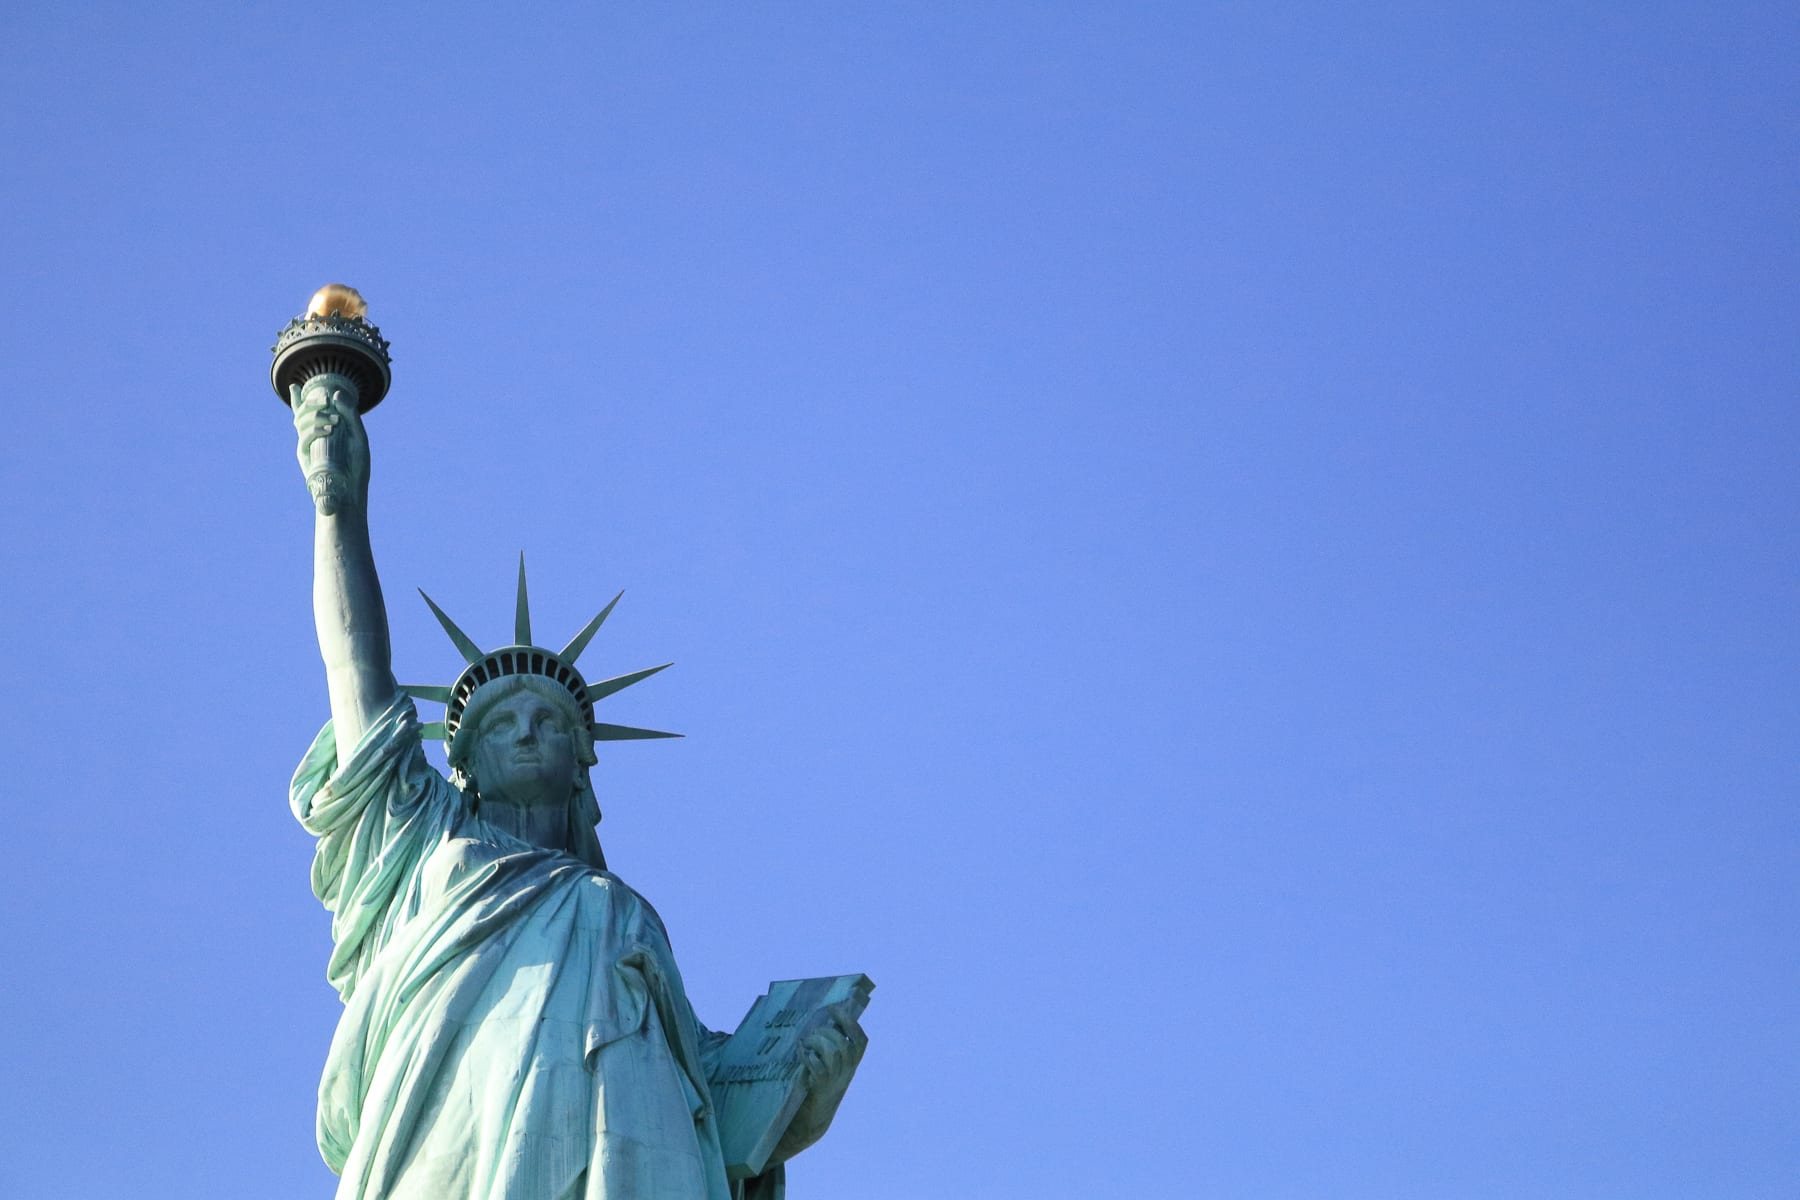 08-NY-journey-ladyliberty12-1.jpg